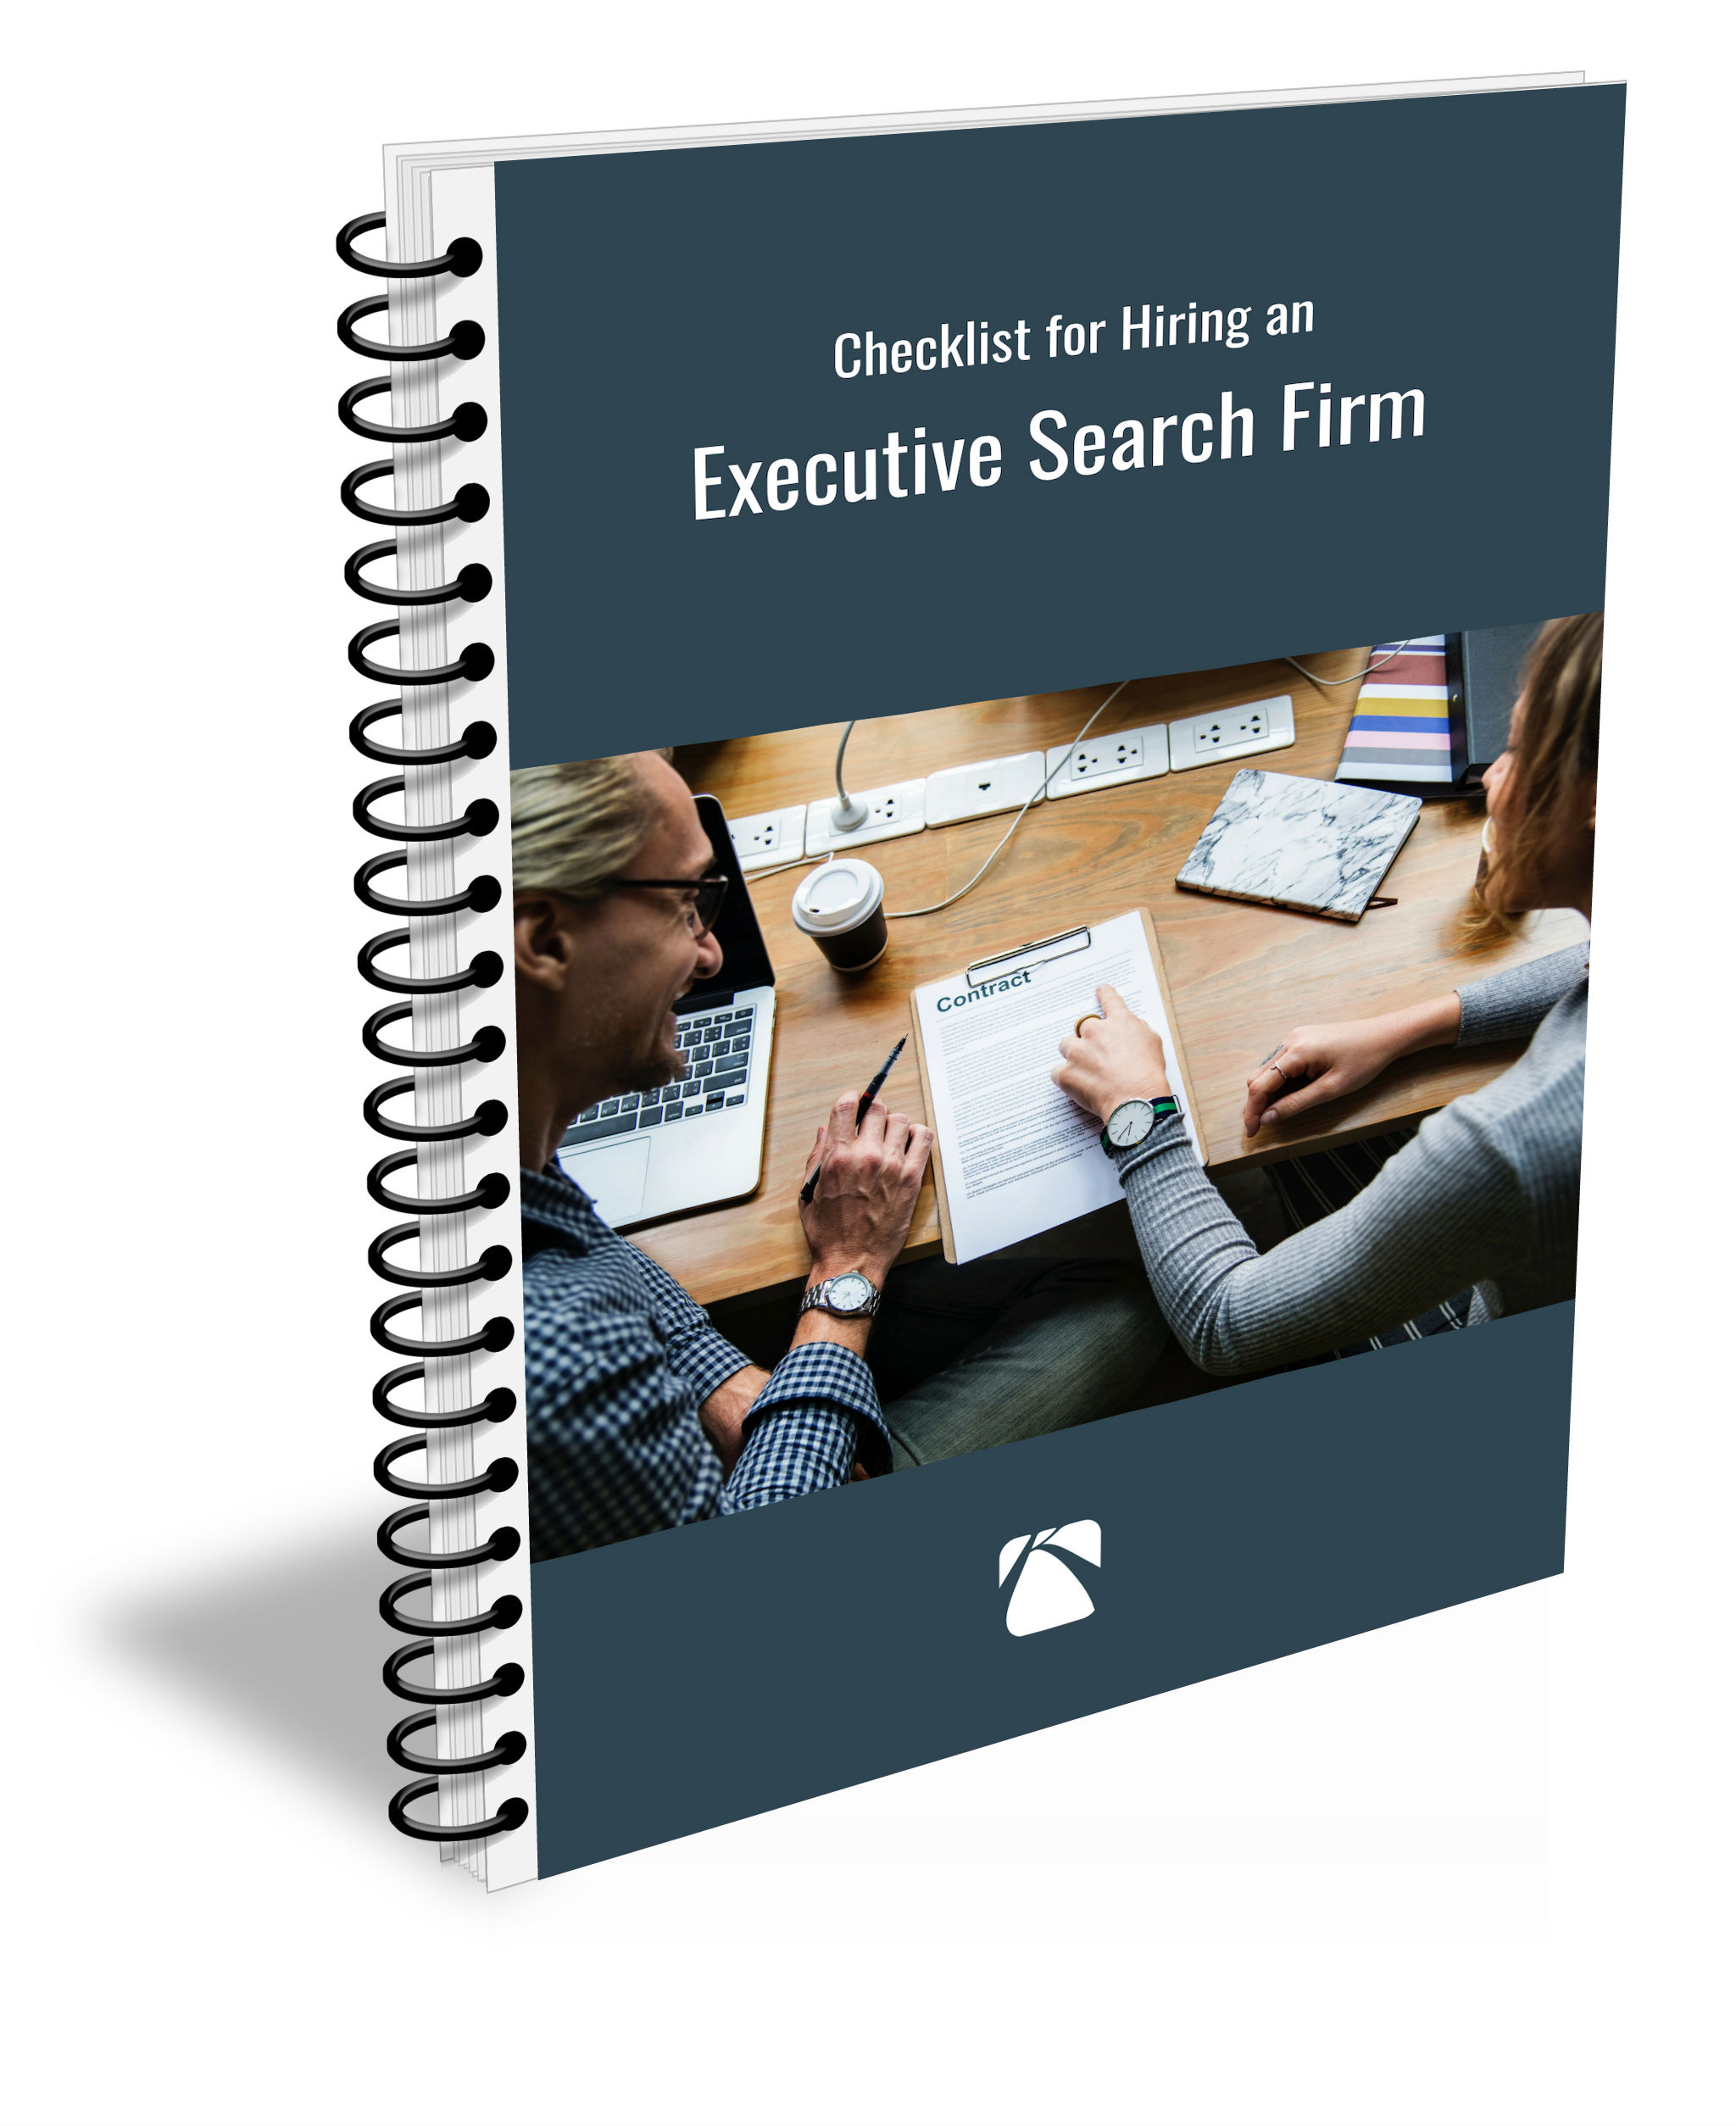 Checklist for Hiring an Executive Search Firm